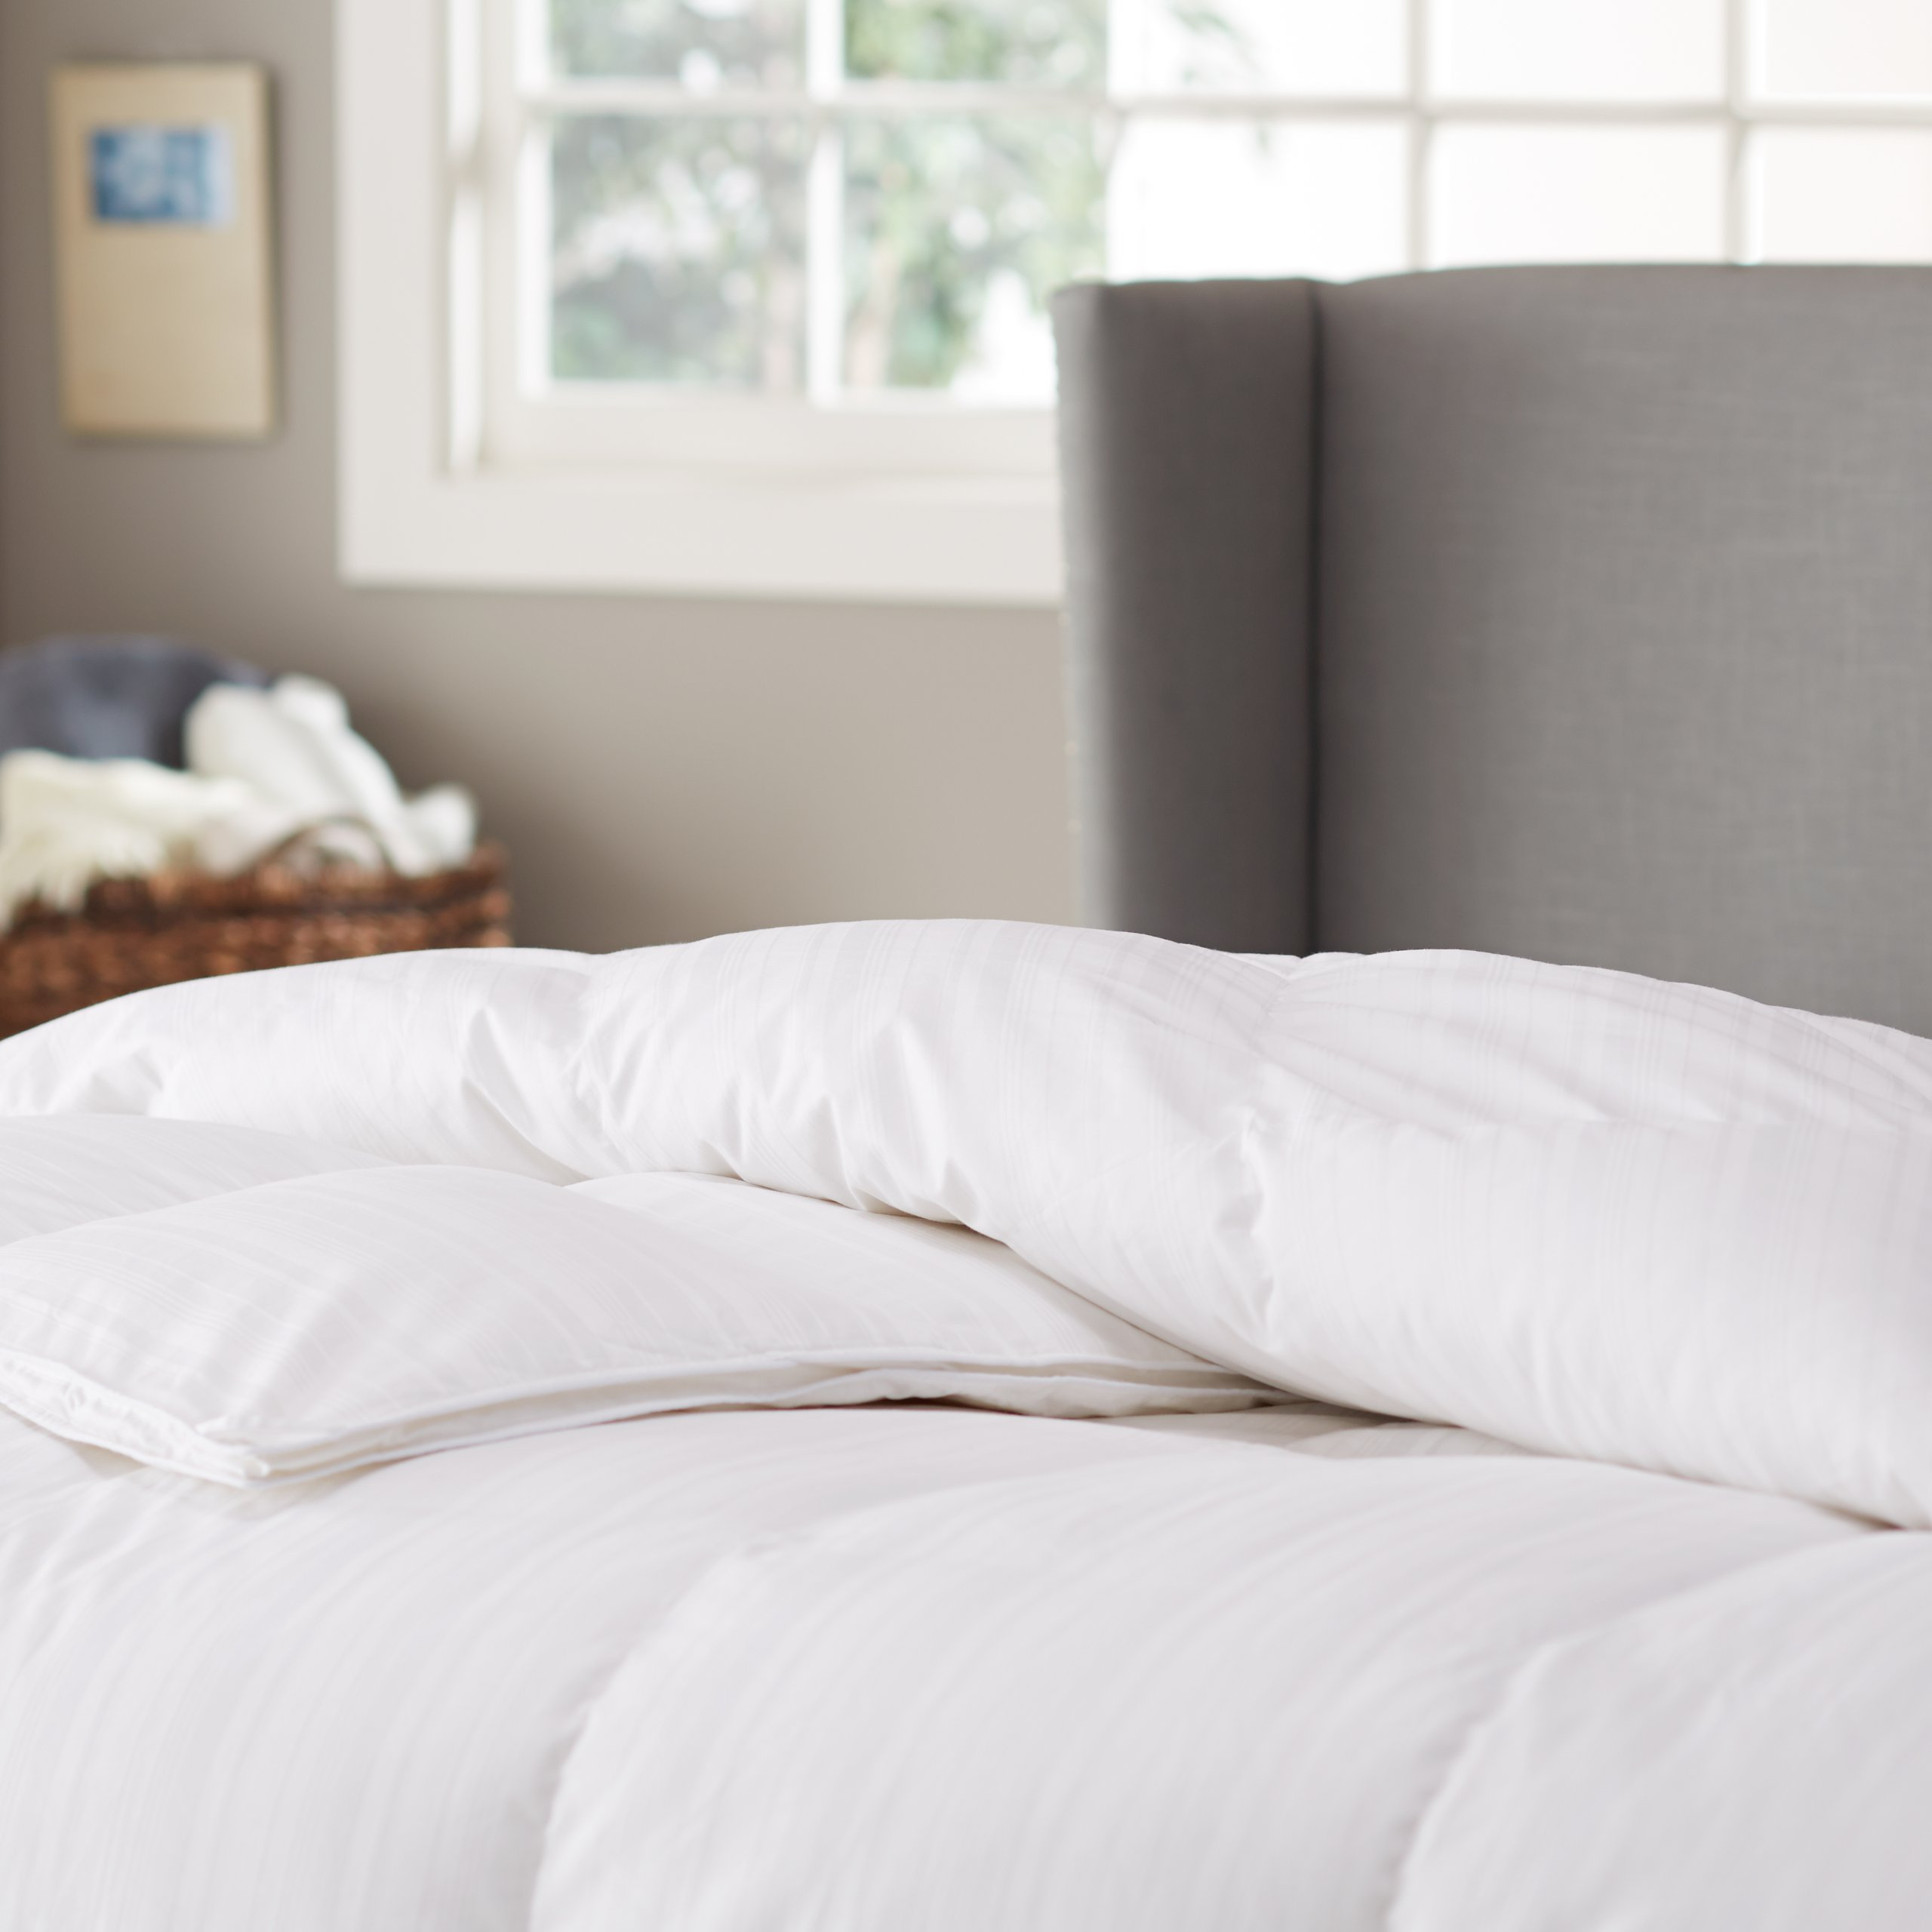 Pinzon Hypoallergenic White Goose Down Feather Comforter, 100% Cotton Cover - Medium Warmth, Full/Queen